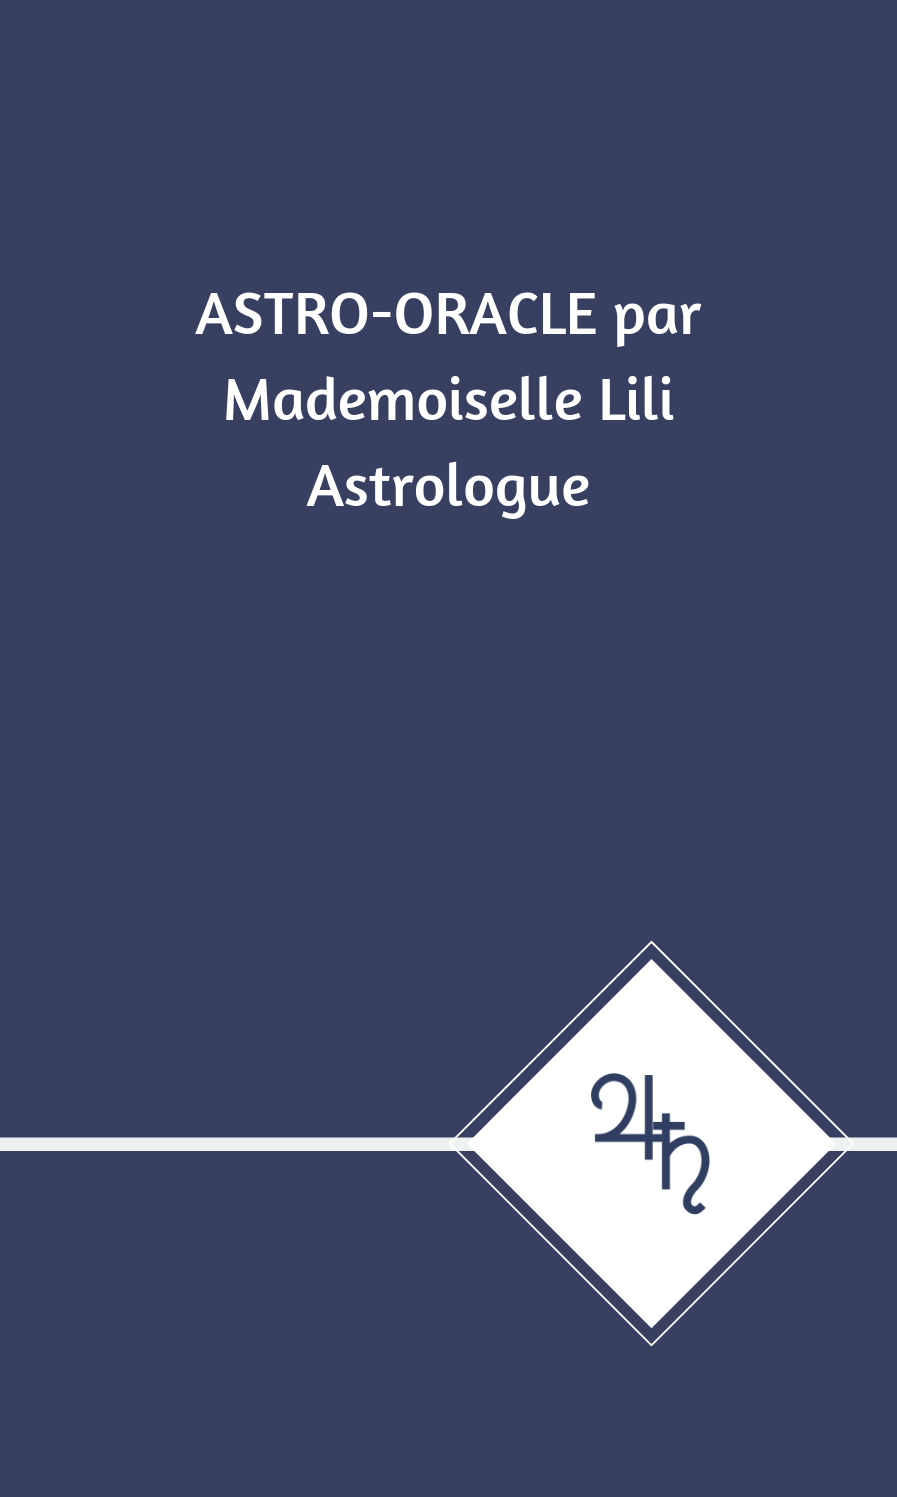 Cartes Astro-Oracle par Mademoiselle Lili Astrologue